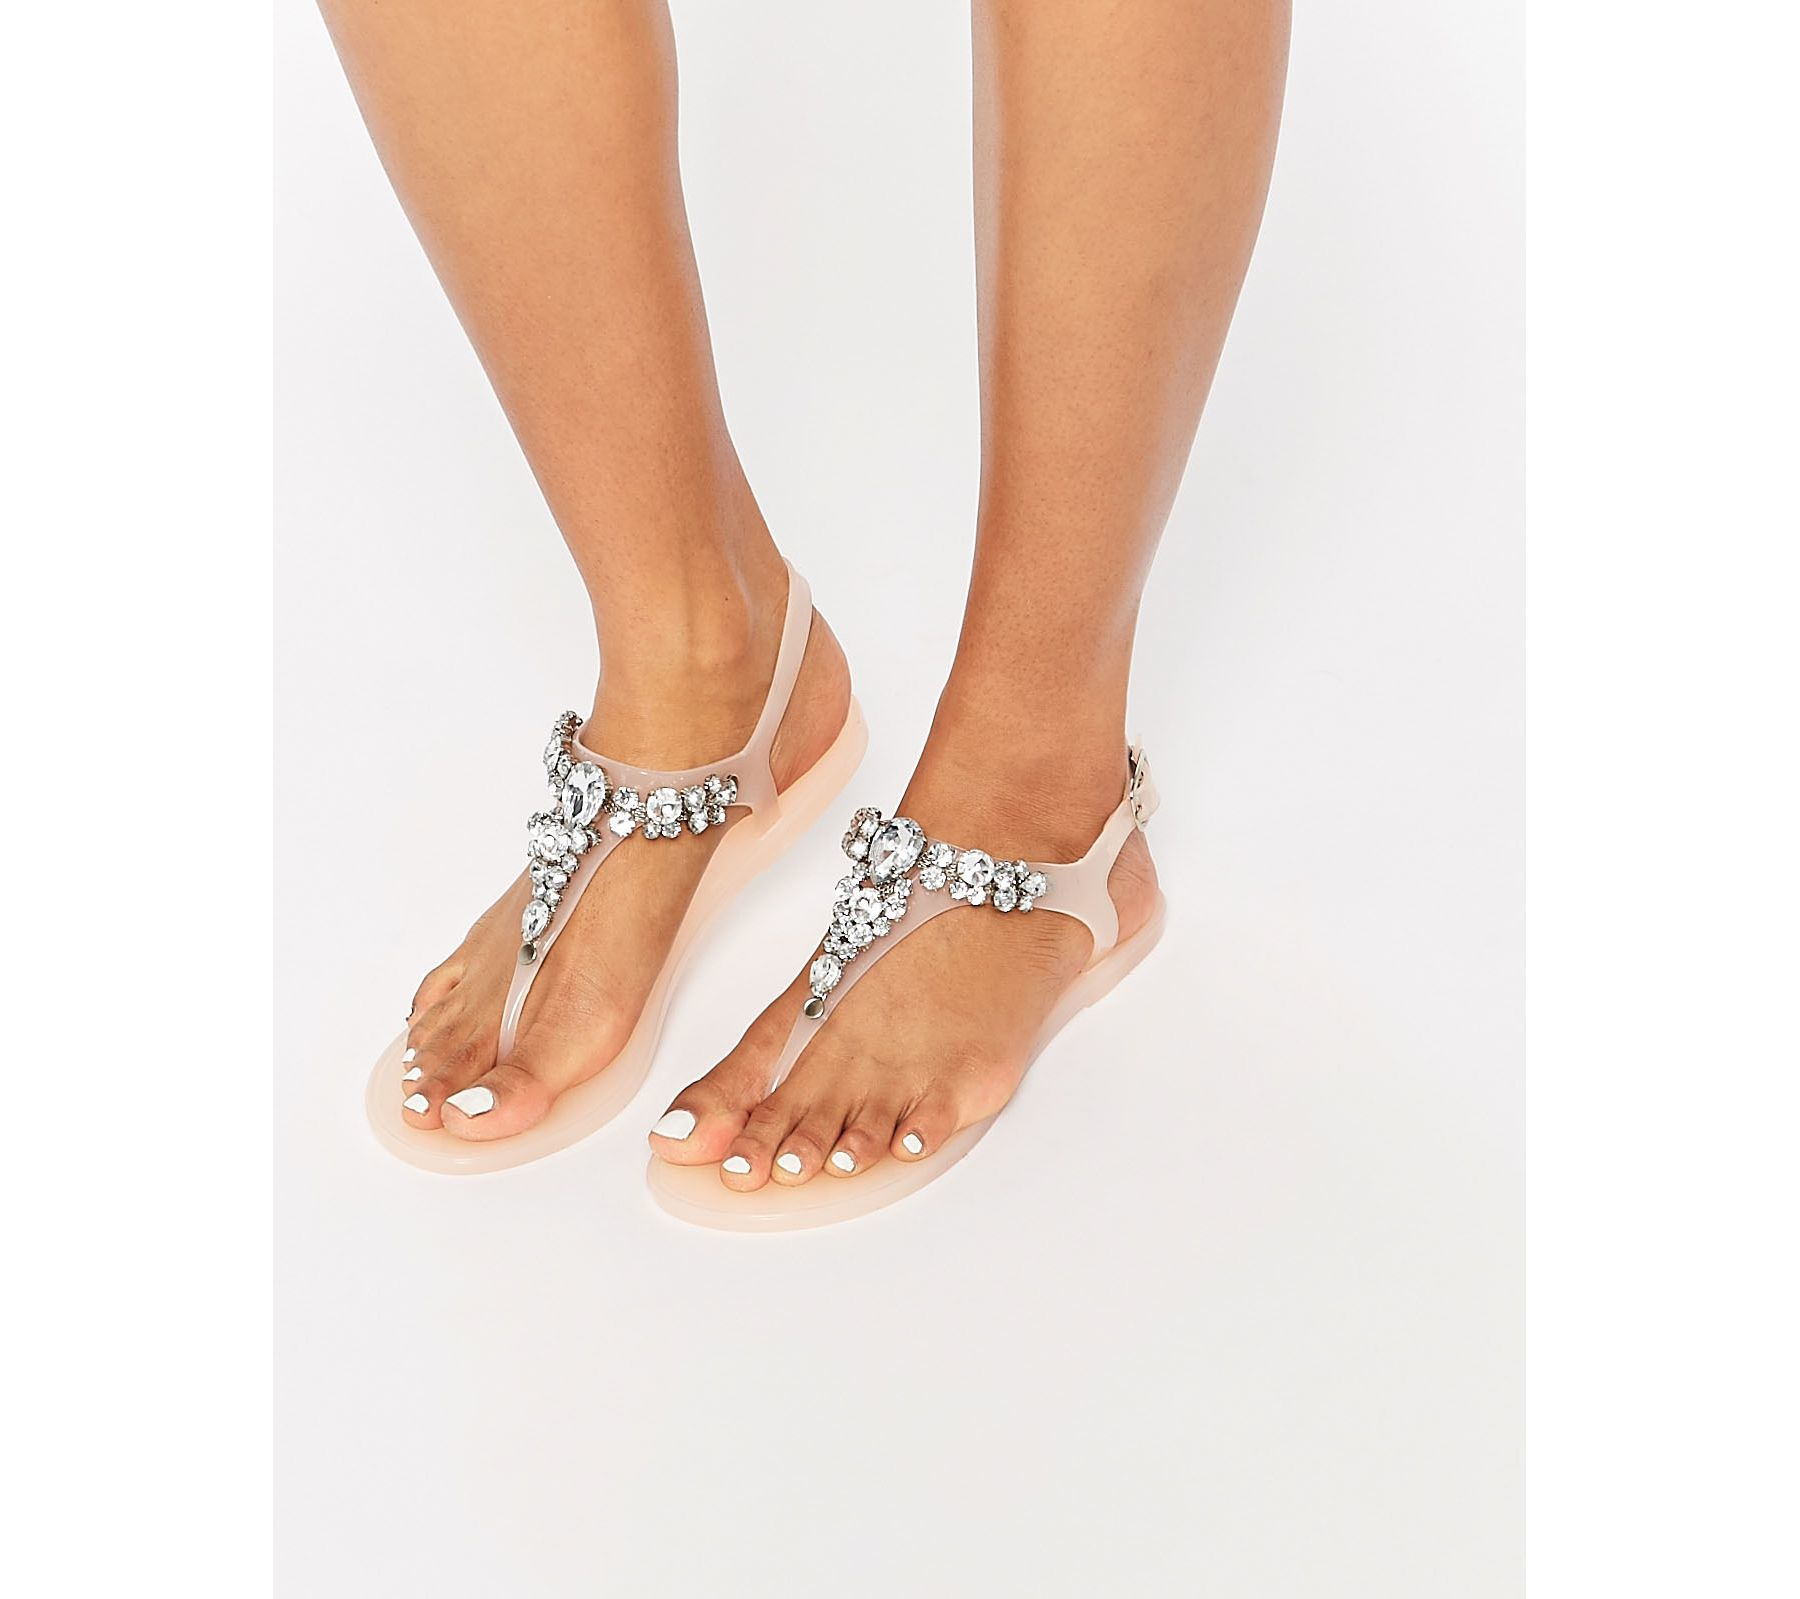 Lipsy Jelly Flat Sandal With Embellished Floral Detail factory outlet authentic sale online buy cheap best place Yl8nsEgOFY